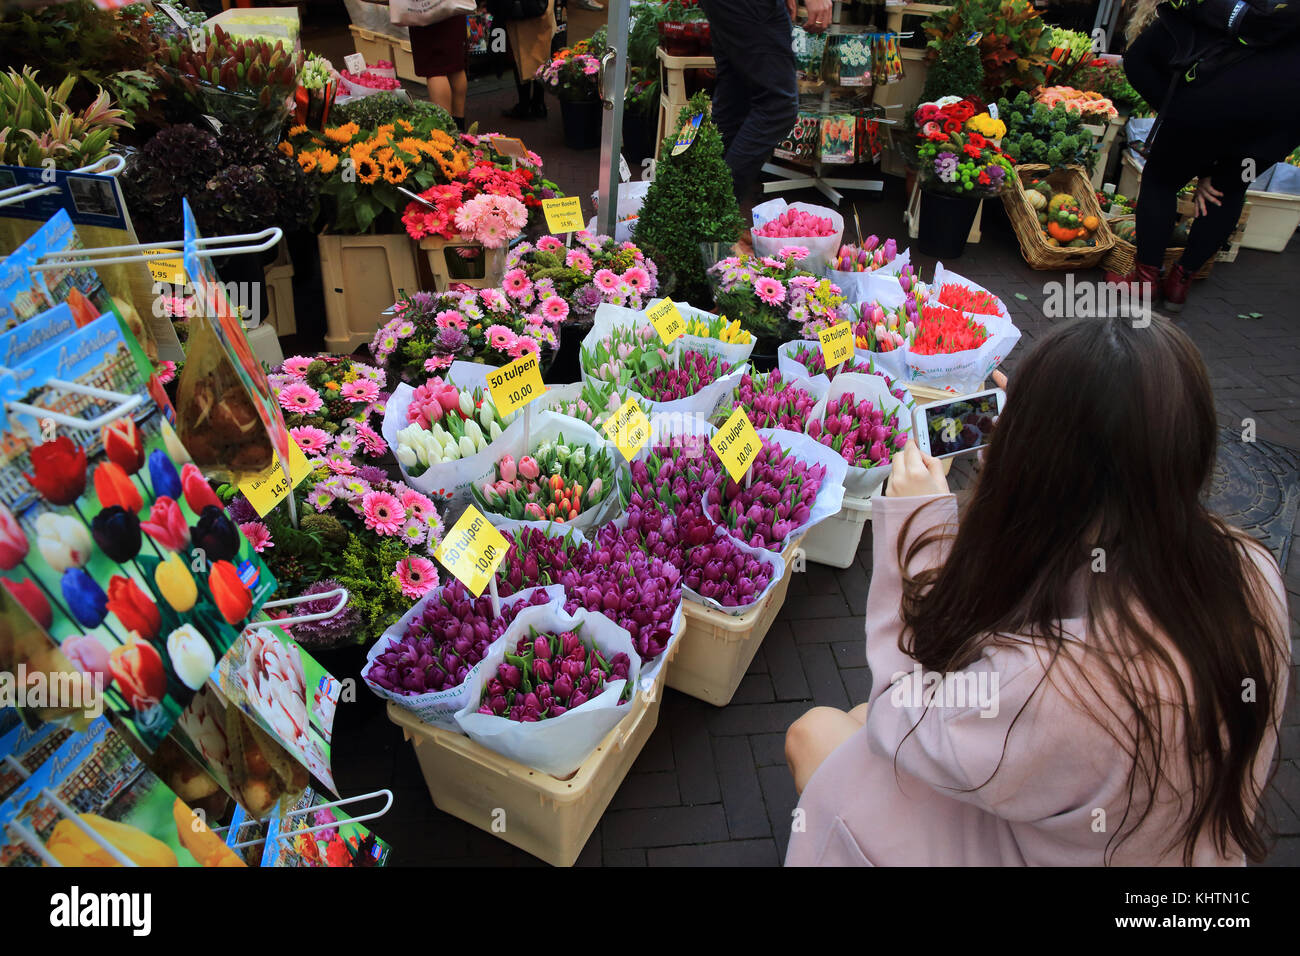 The world famous floating flower market on the Singel canal, in Amsterdam in the Netherlands Stock Photo